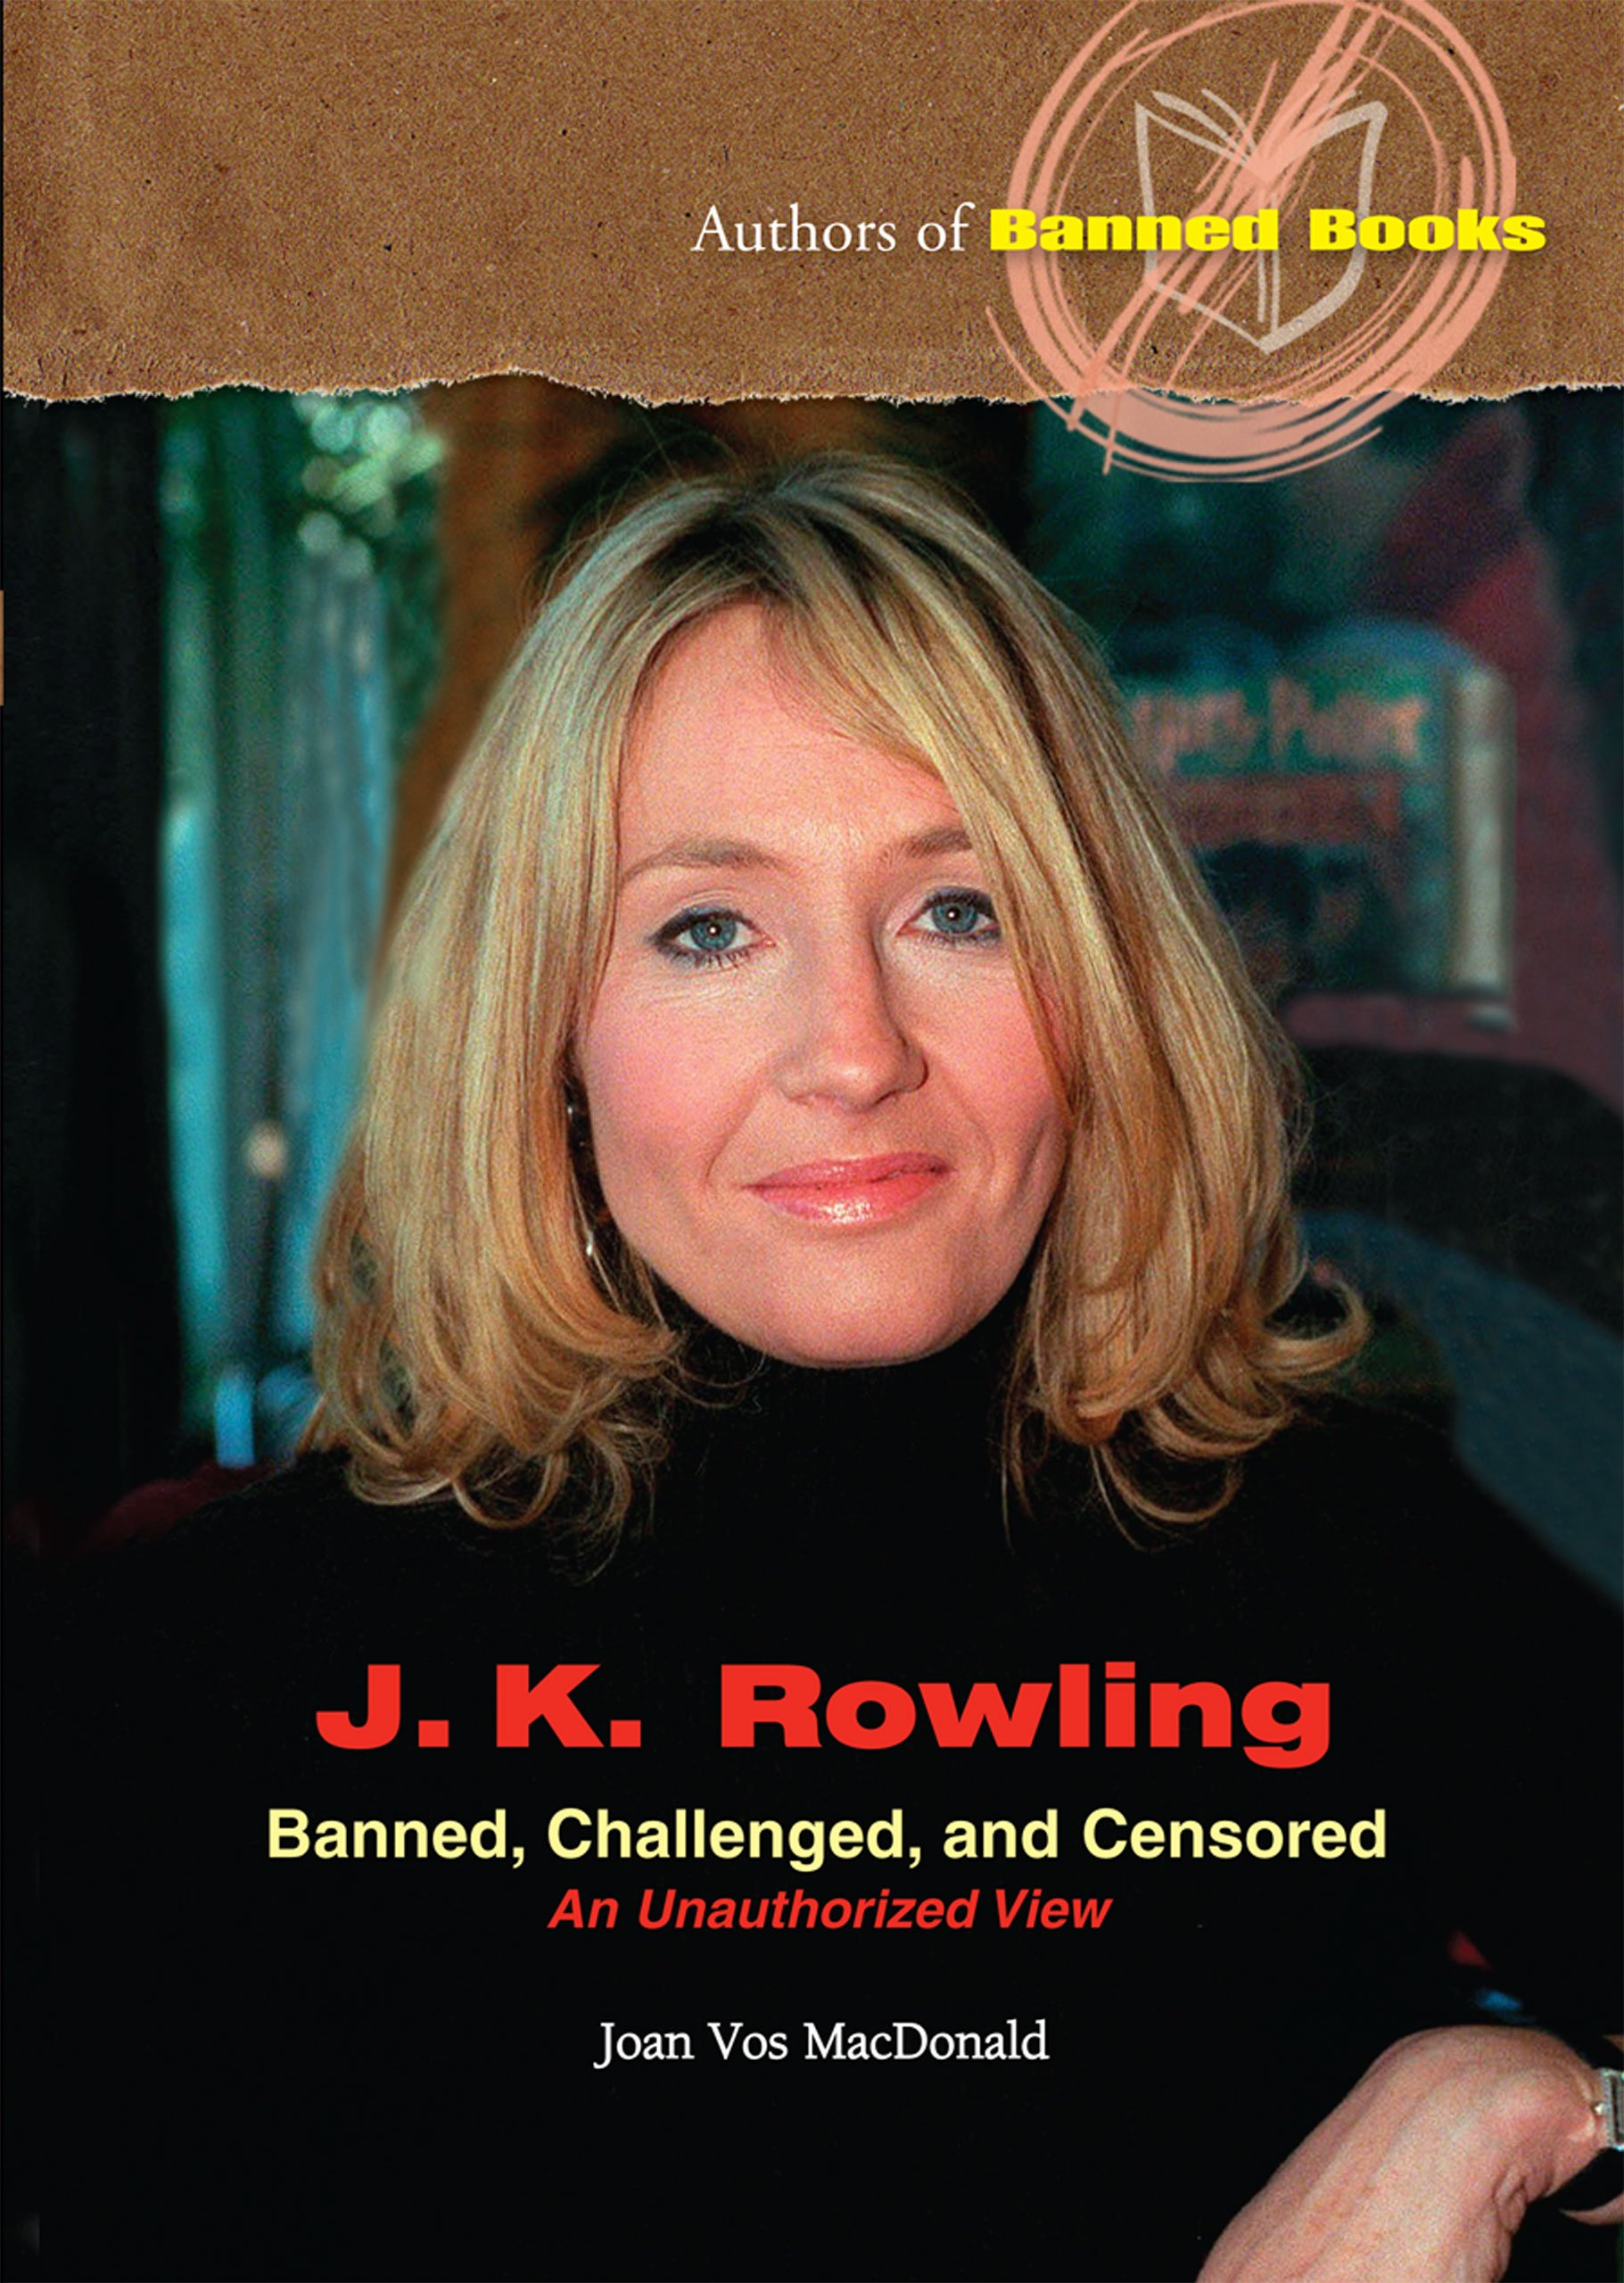 J.K. Rowling: Banned, Challenged, And Censored (Authors of Banned Books) PDF